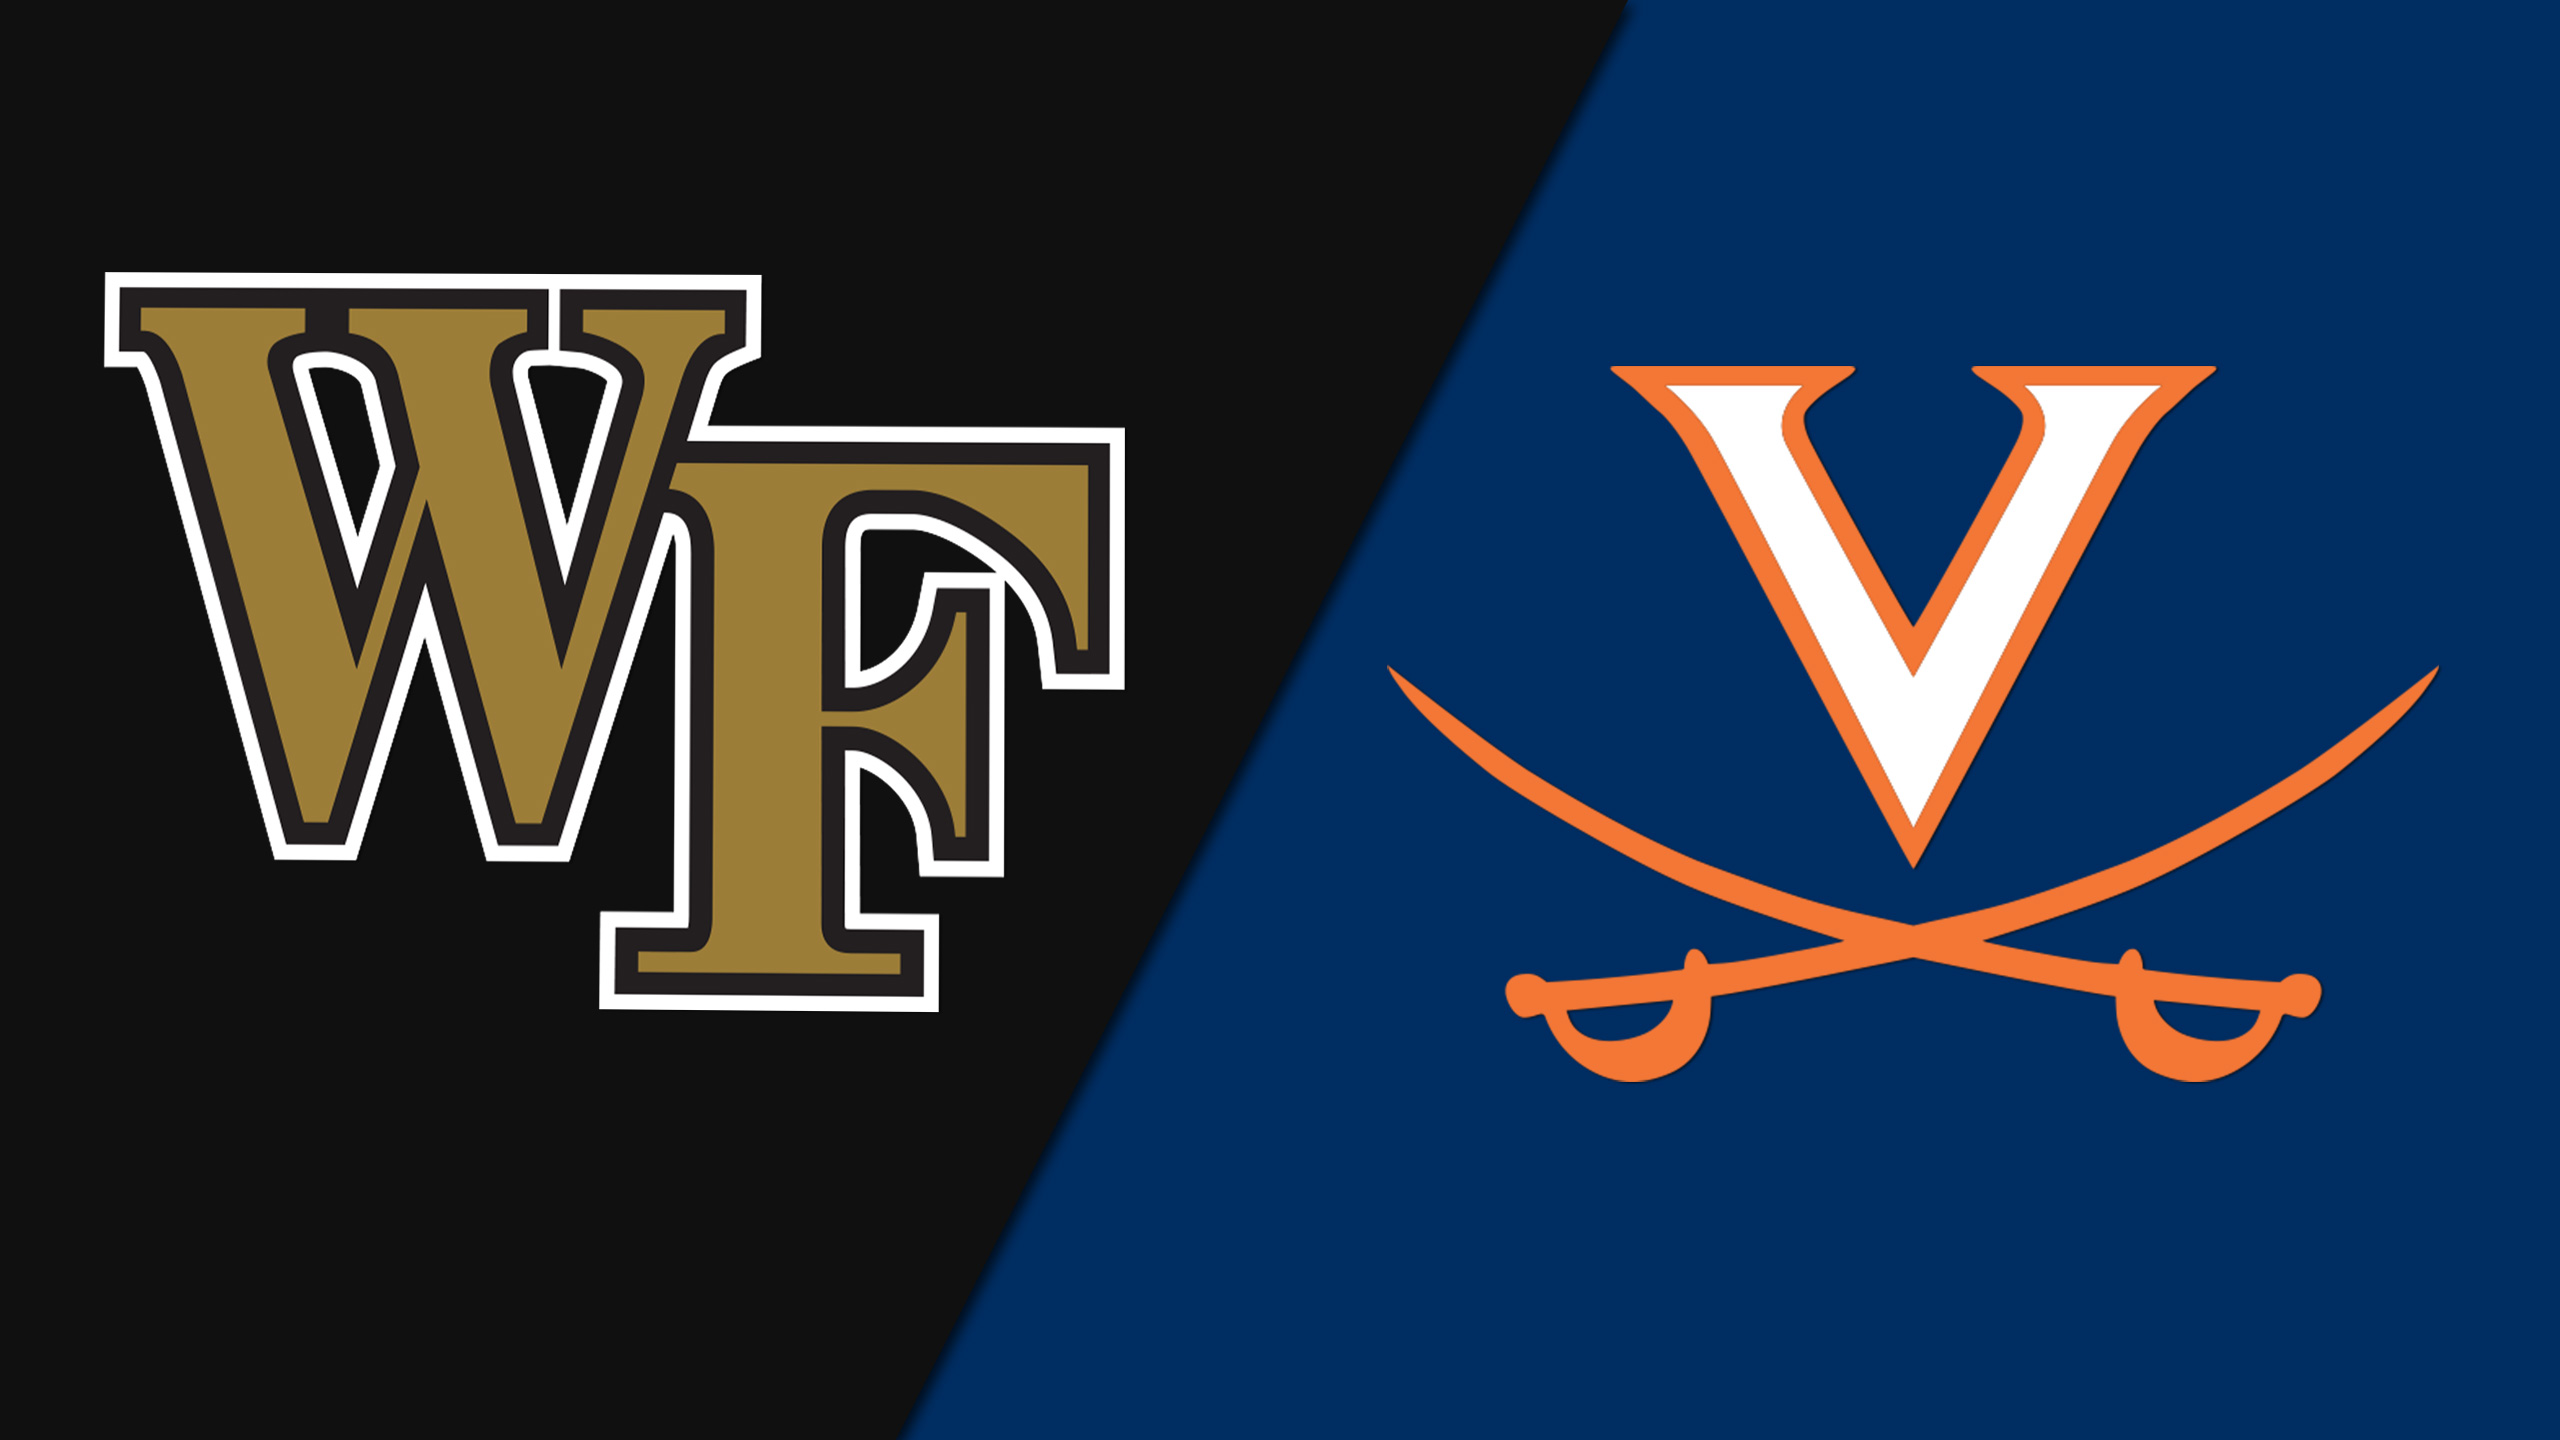 #1 Wake Forest vs. Virginia (M Soccer)